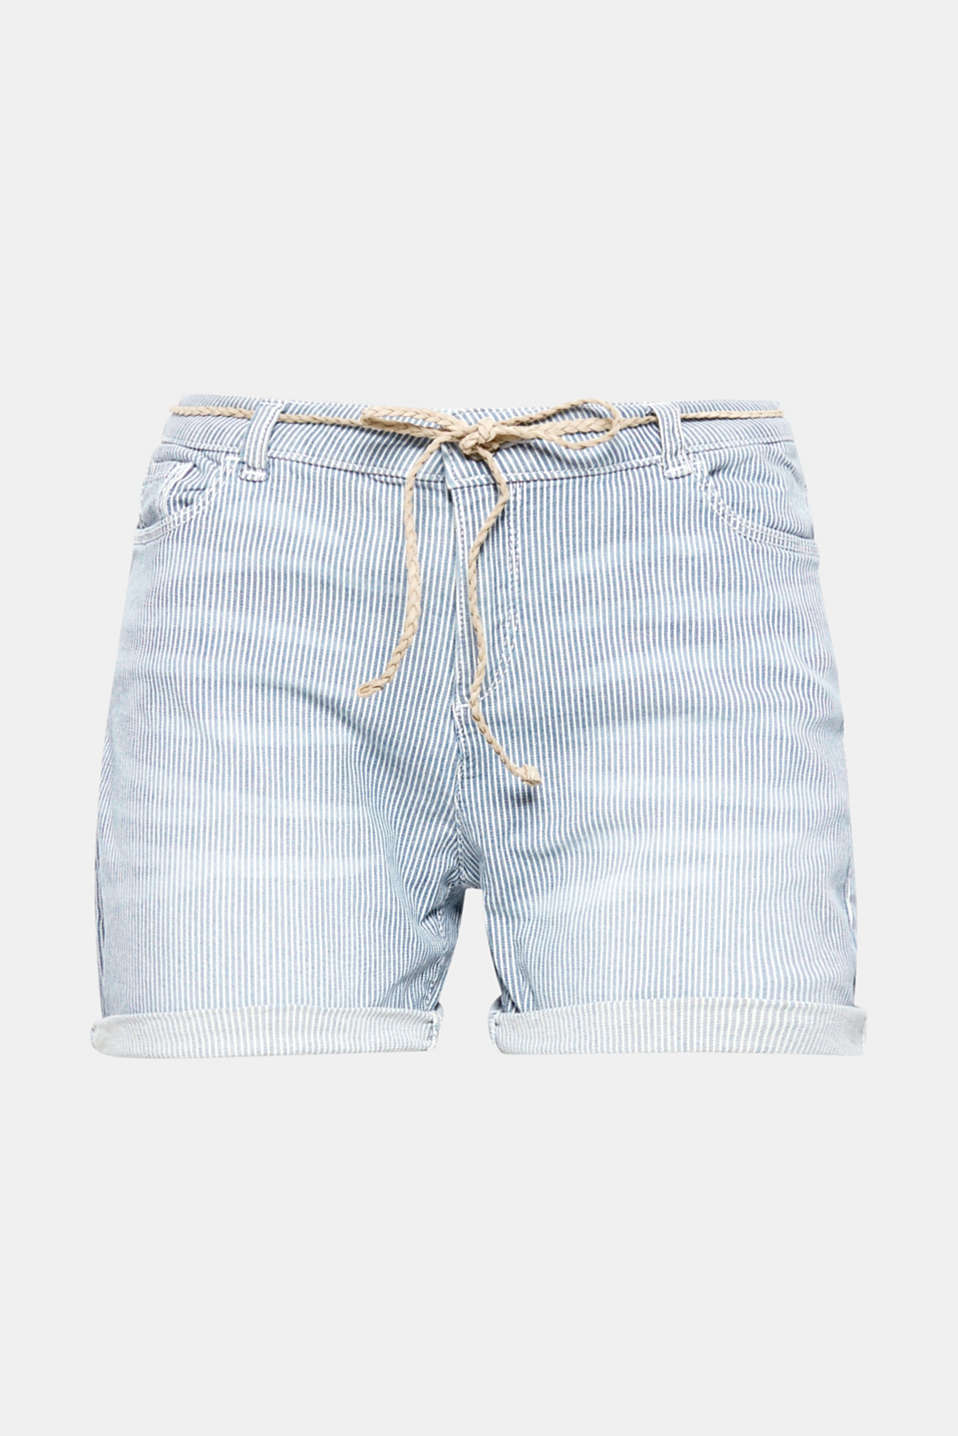 These striped shorts made of pale stretch cotton with fixed turn-up hems and a narrow braided belt are a great basic for your summer outfit.